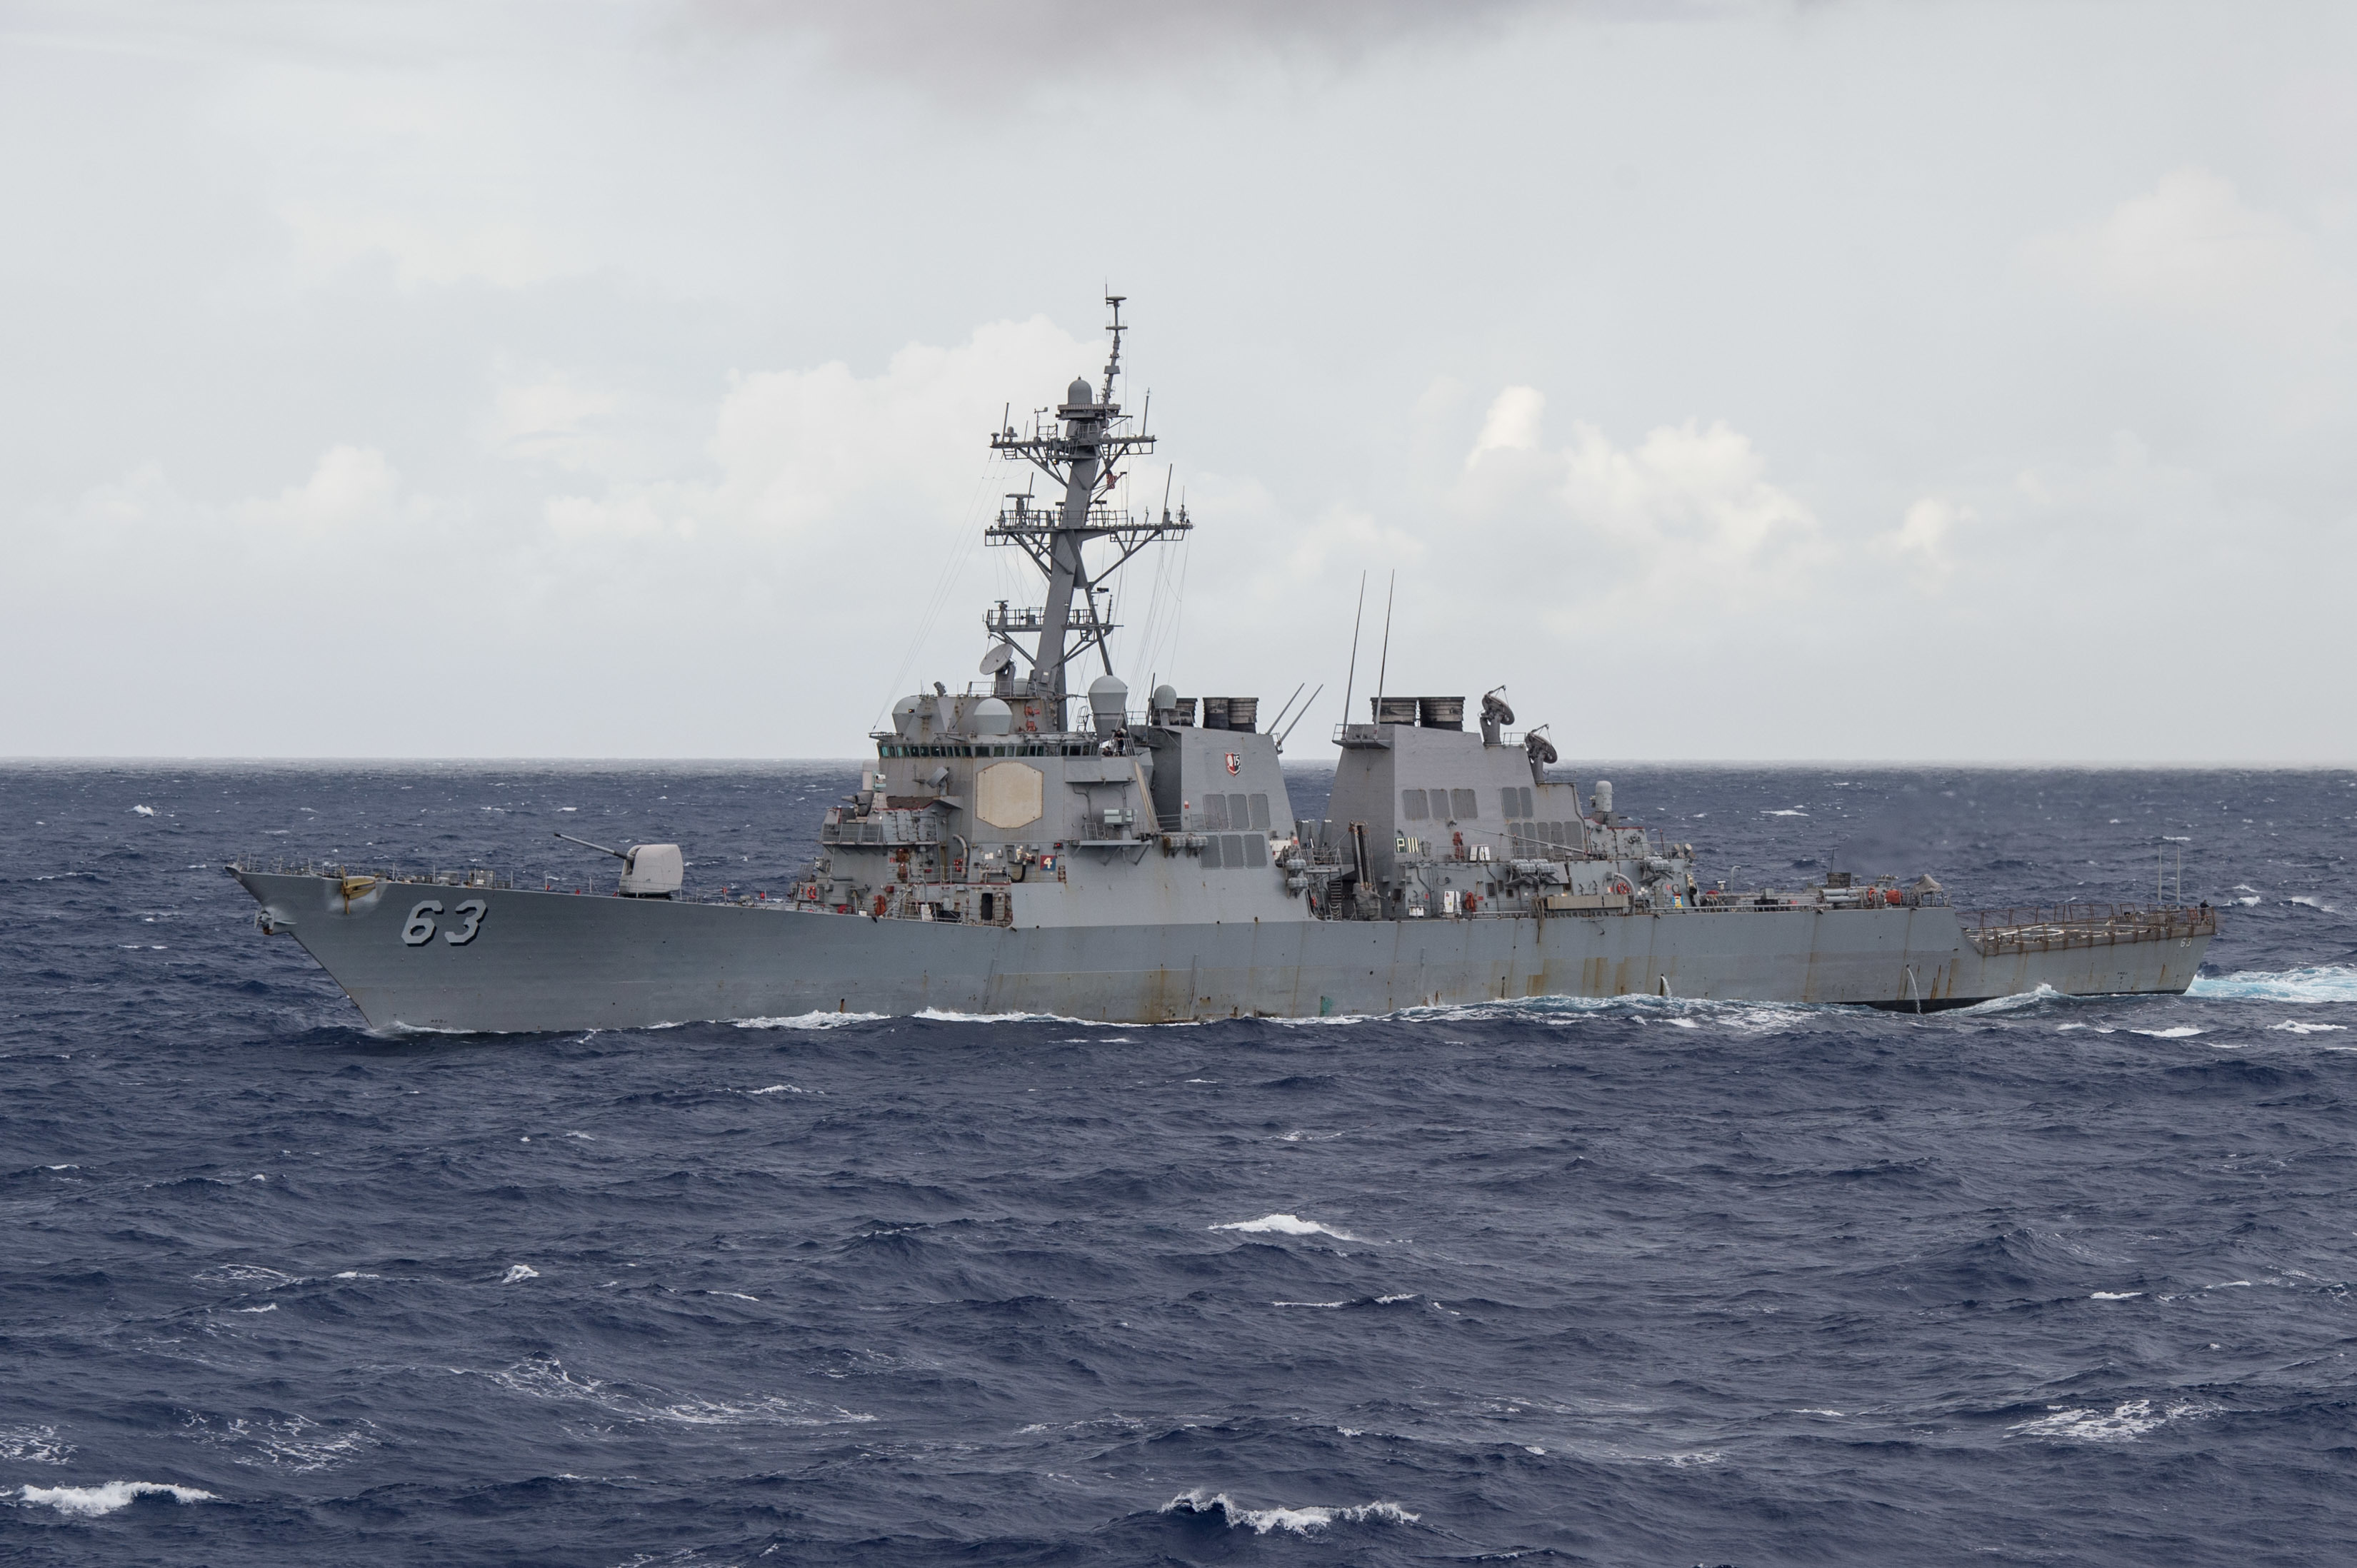 Destroyer sailor missing, presumed overboard in the South China Sea